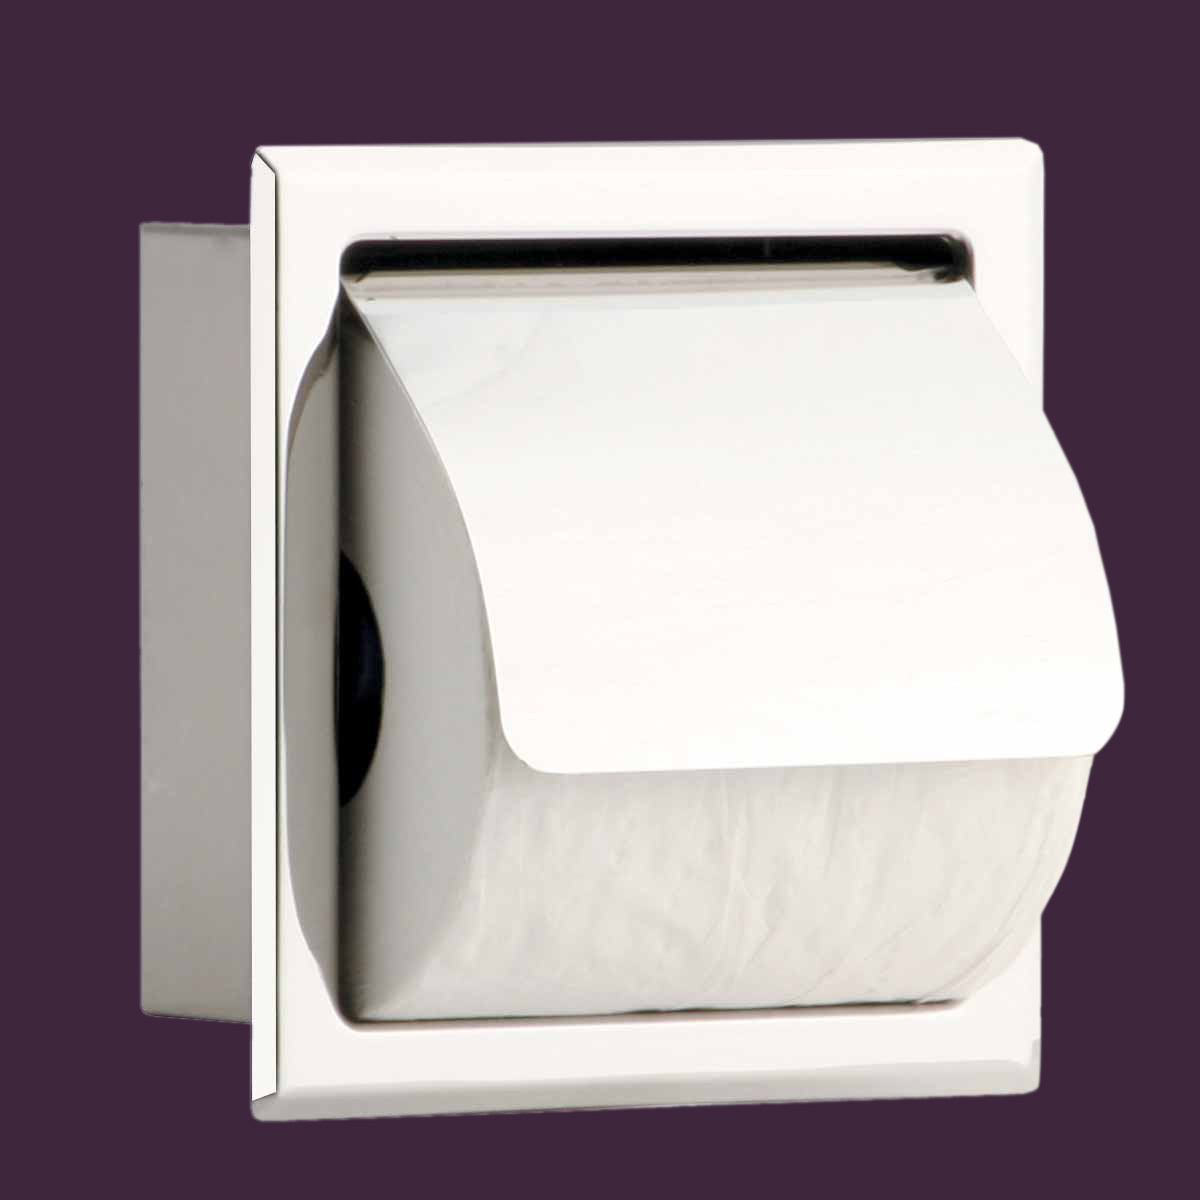 Recessed Toilet Paper Holder For Large Rolls 13792 Jpg